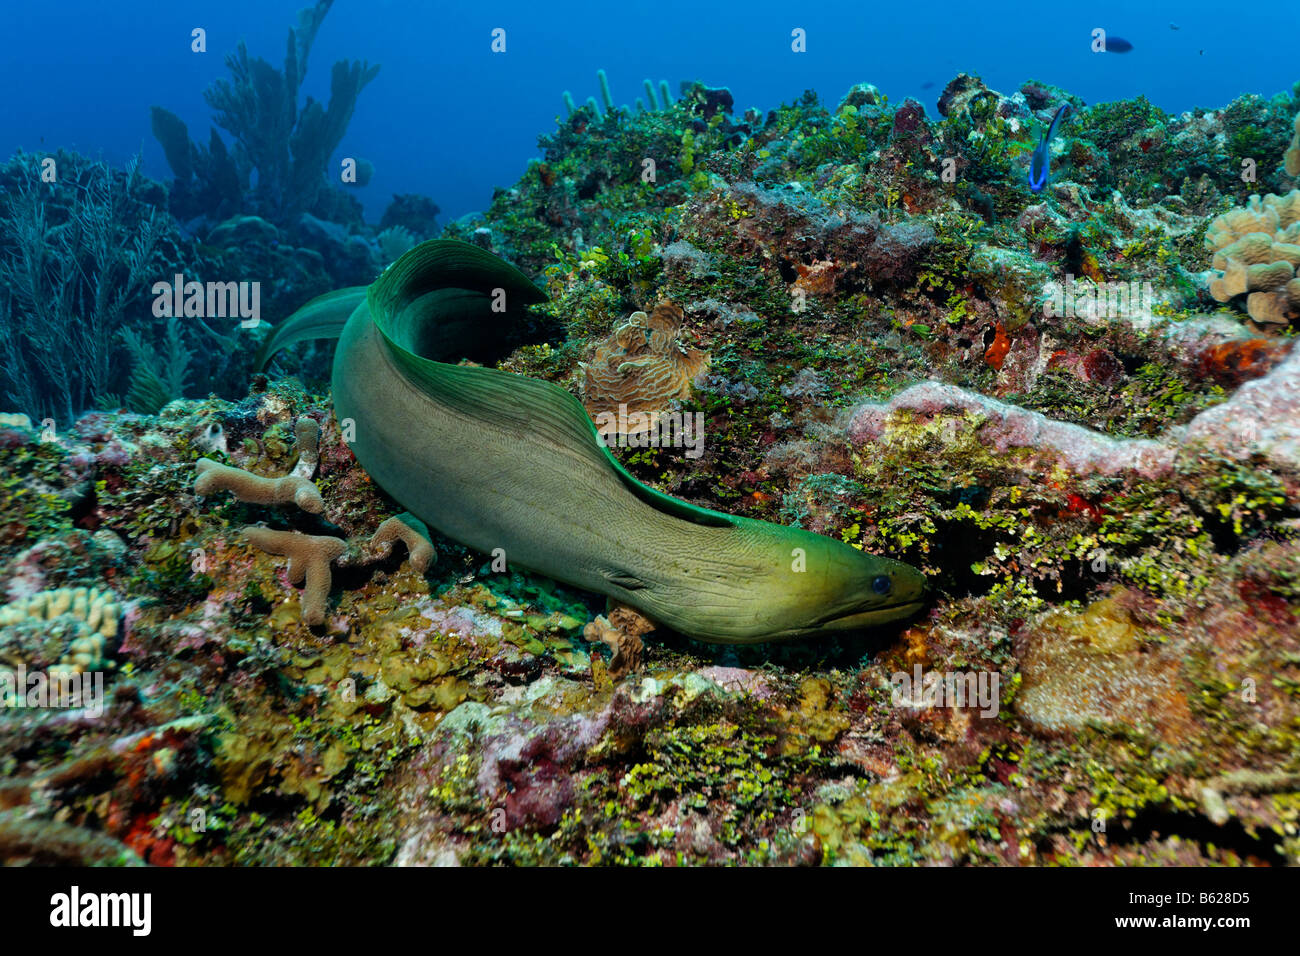 Green Moray (Gymnothorax funebris), an eel, searching every crevice in a coral reef for prey, also Halimeda Algae Stock Photo